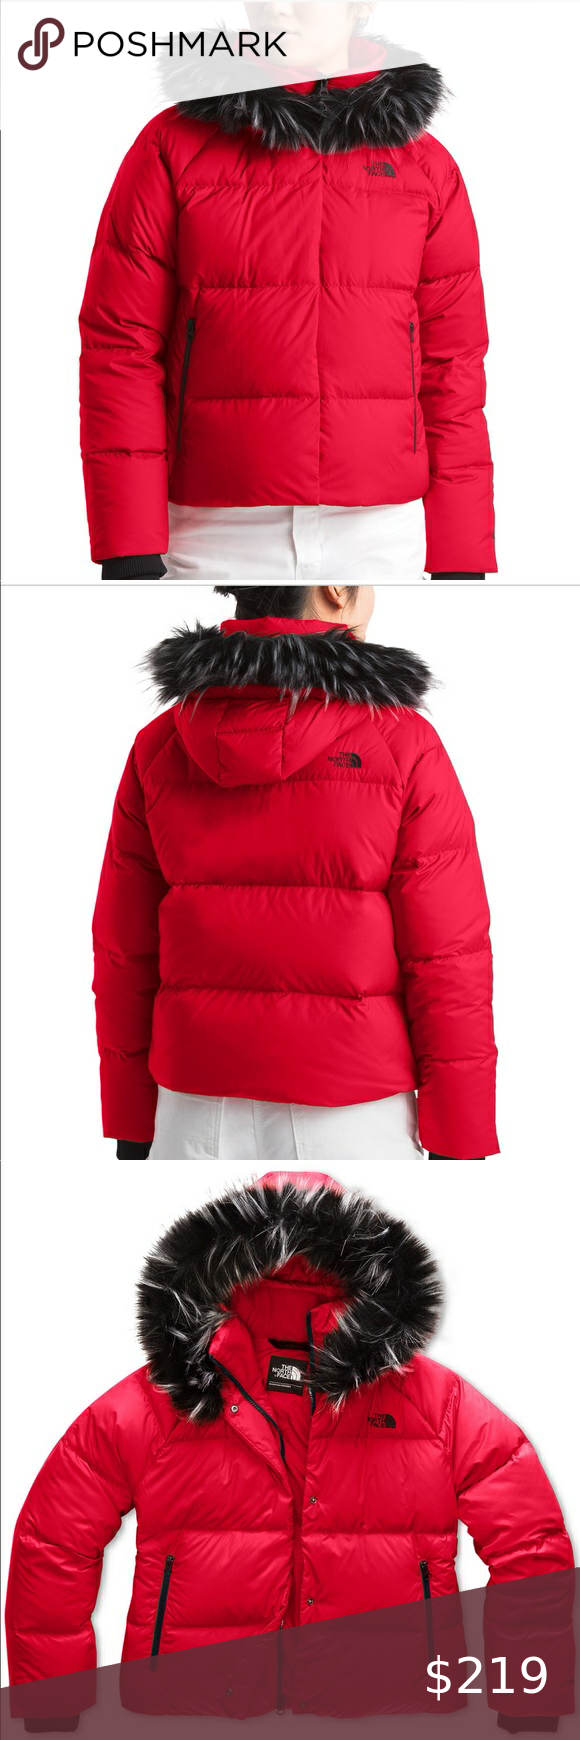 North Face Down Filled Red Hooded Jacket New Xl Red Hooded Jacket Trim Jacket The North Face [ 1740 x 580 Pixel ]